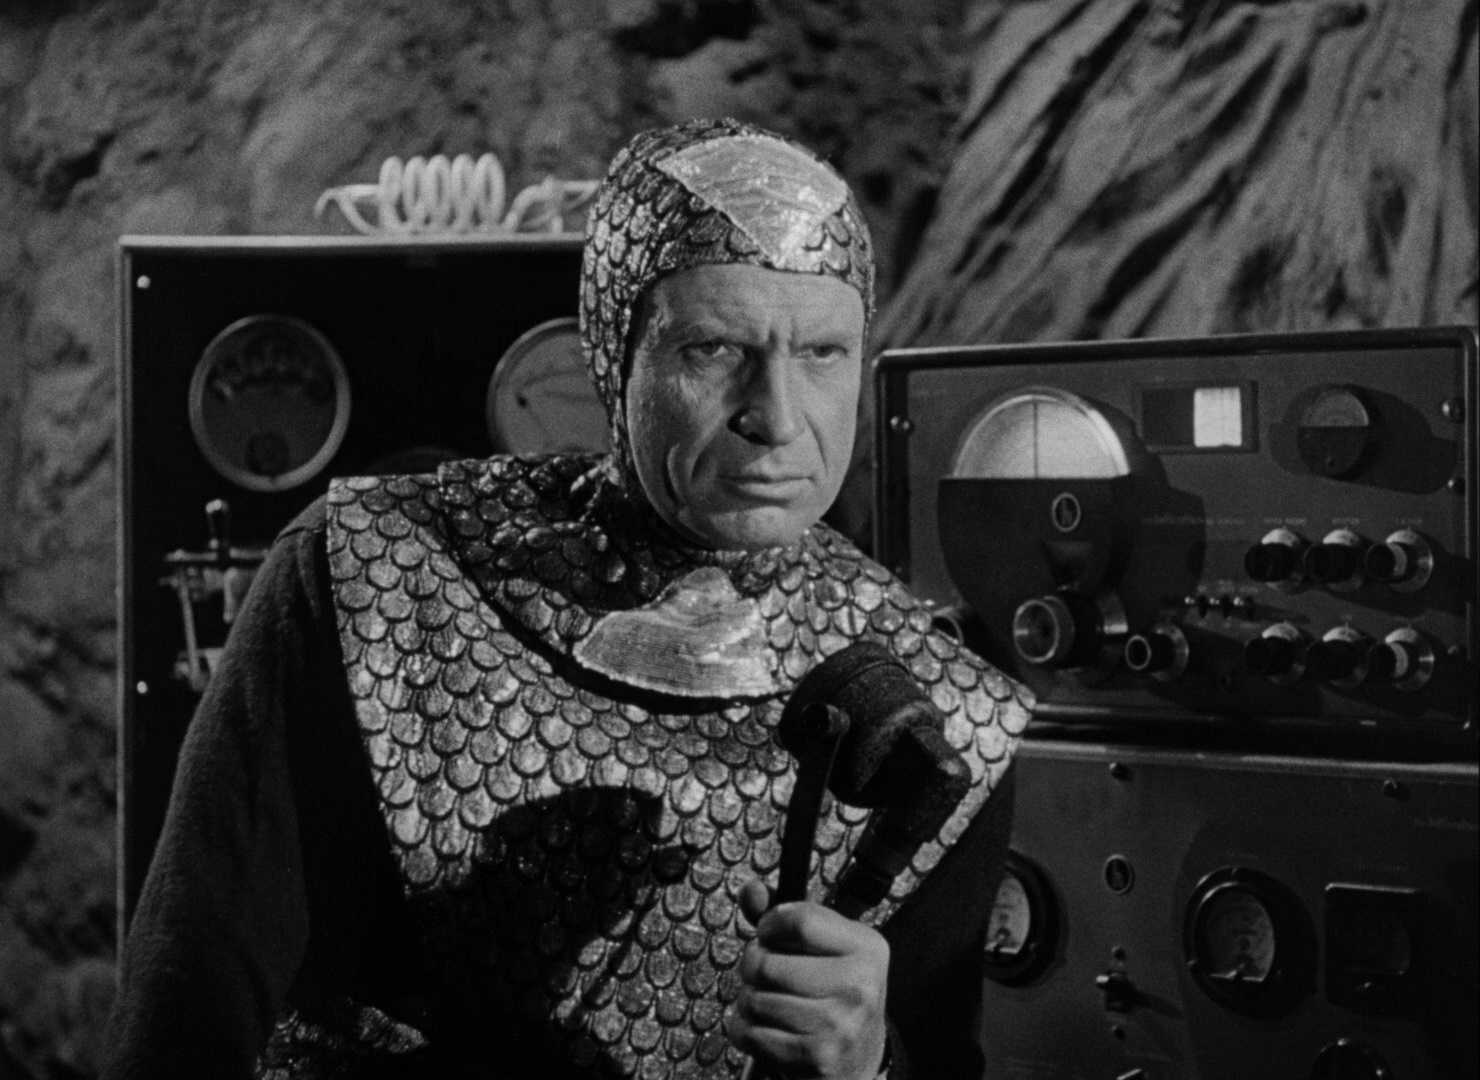 Mota the Martian invader (Gregory Gay) in Flying Disc Man from Mars (1950)